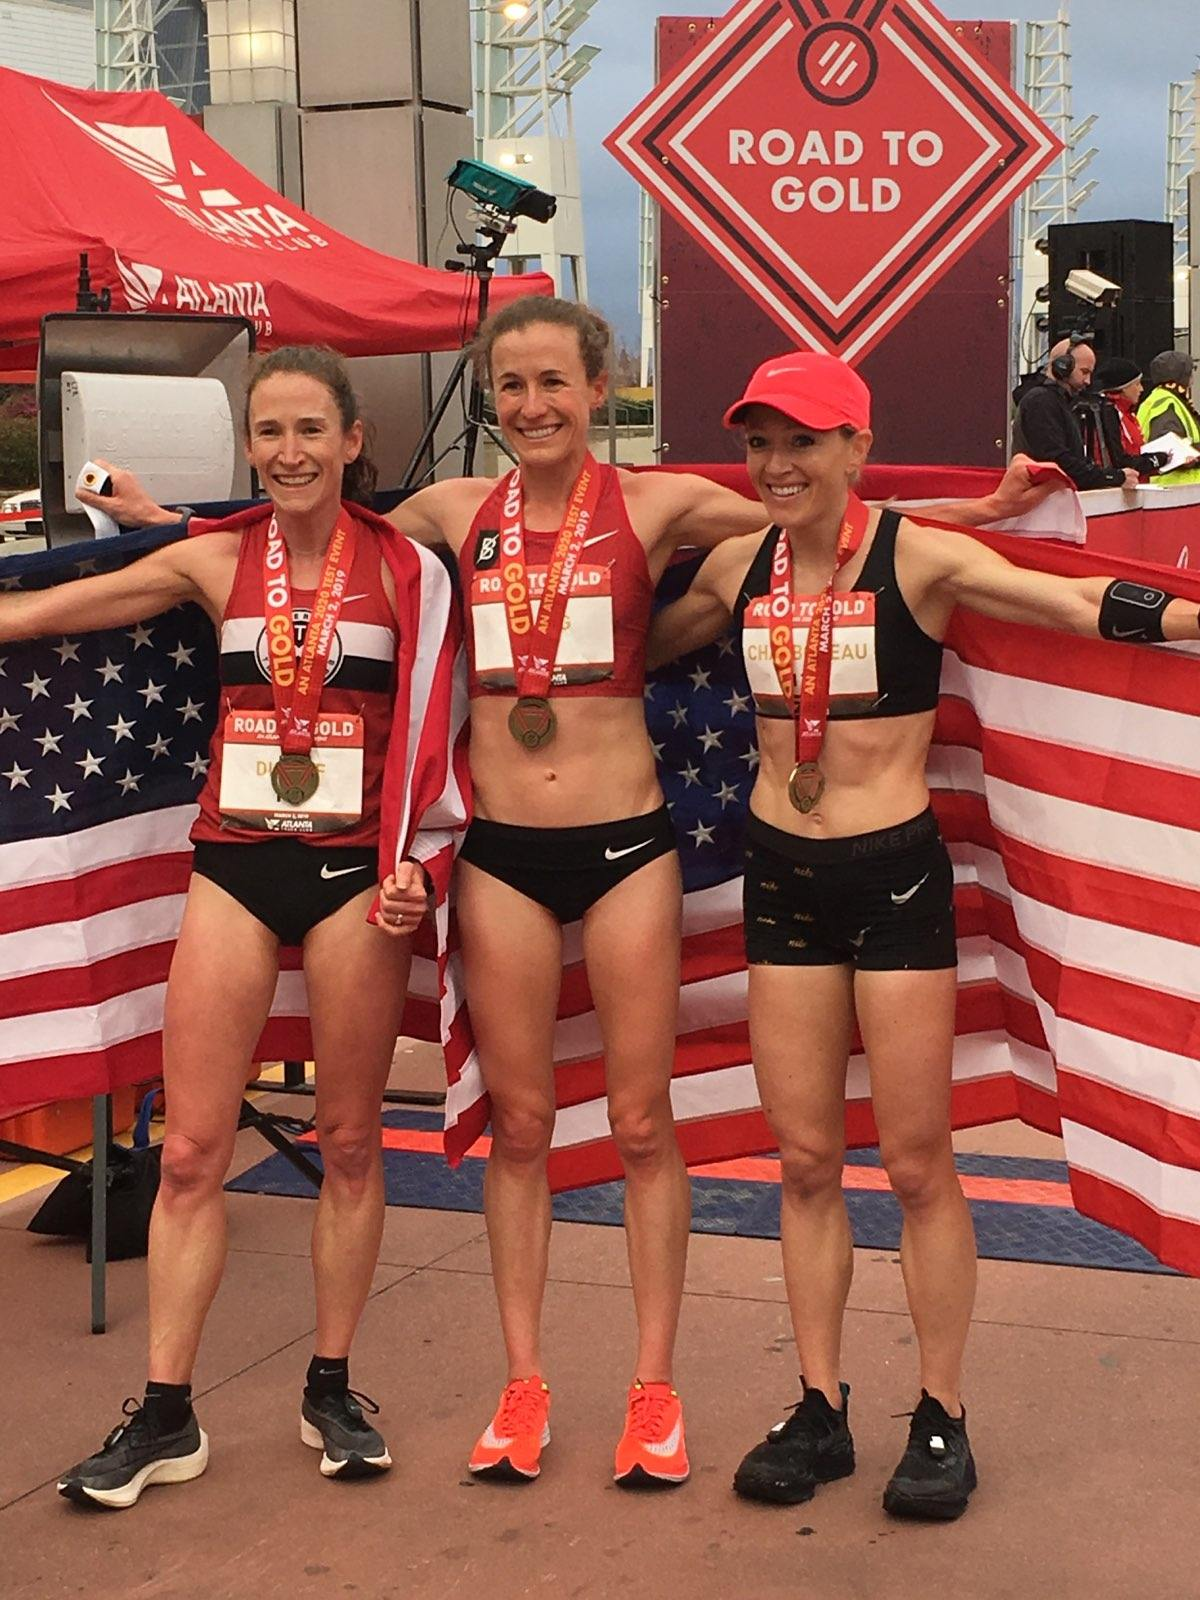 Olympic Hopefuls Get First Look at 2020 Olympic Team Trials - Marathon Course